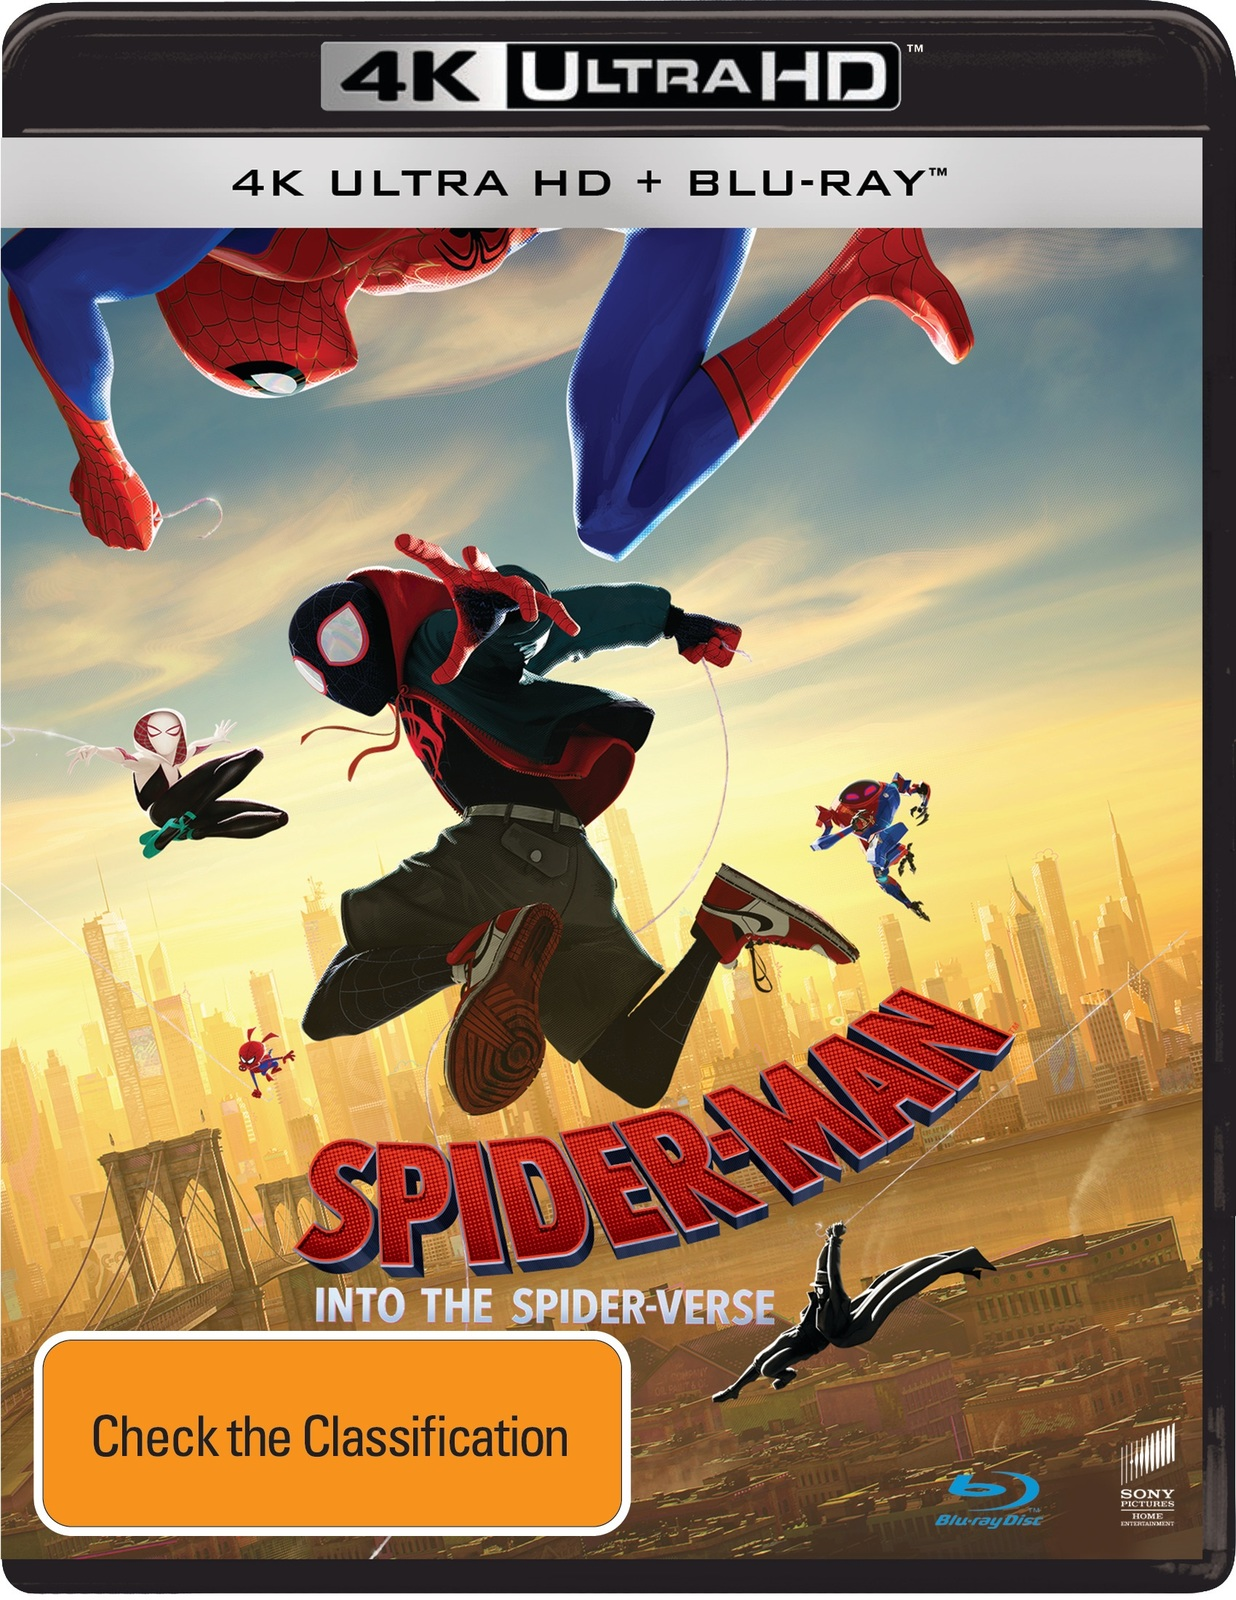 Spider-Man: Into the Spider-Verse on Blu-ray, UHD Blu-ray image